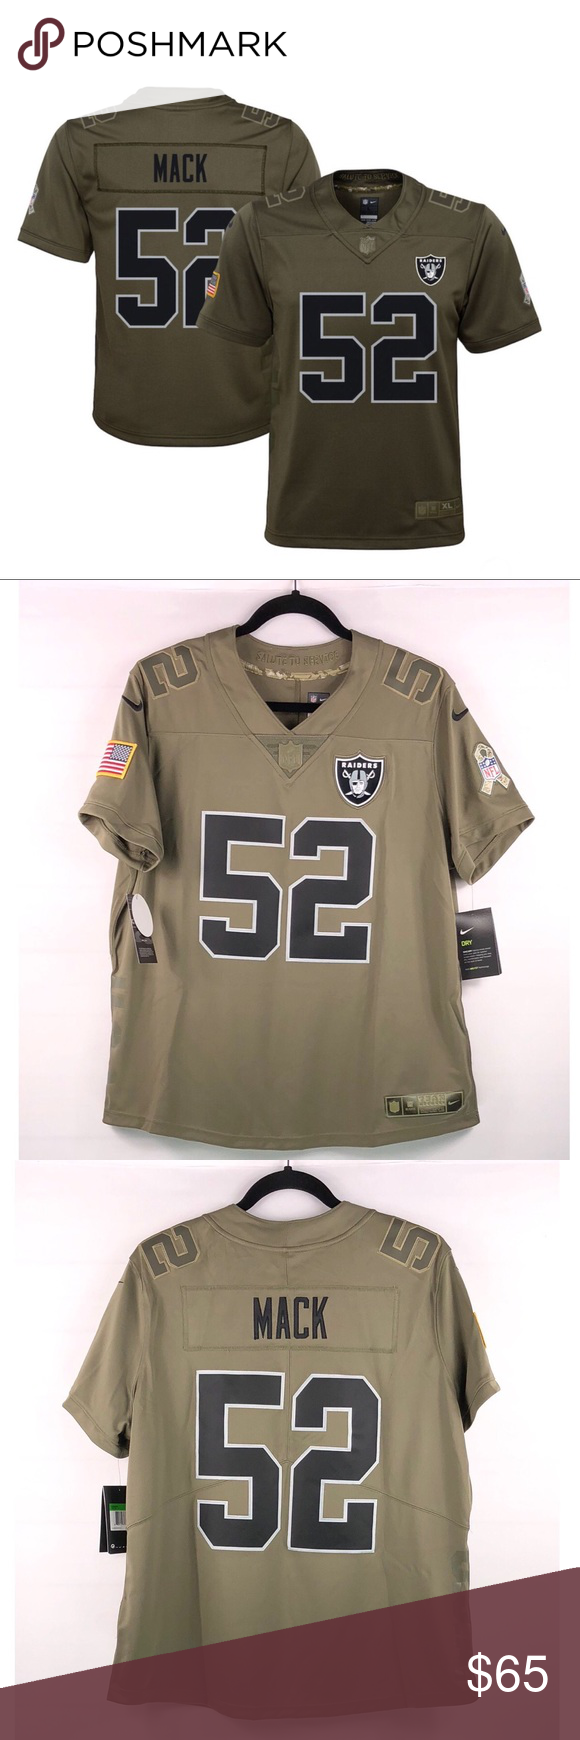 Nike NFL Raiders Jersey Khalil Mack  52 Nike NFL Raiders Womens Sz XL  Limited Salute to Service Khalil Mack  52 NWT Actual Measurements  are  aimed to help ... 2f557a9bd